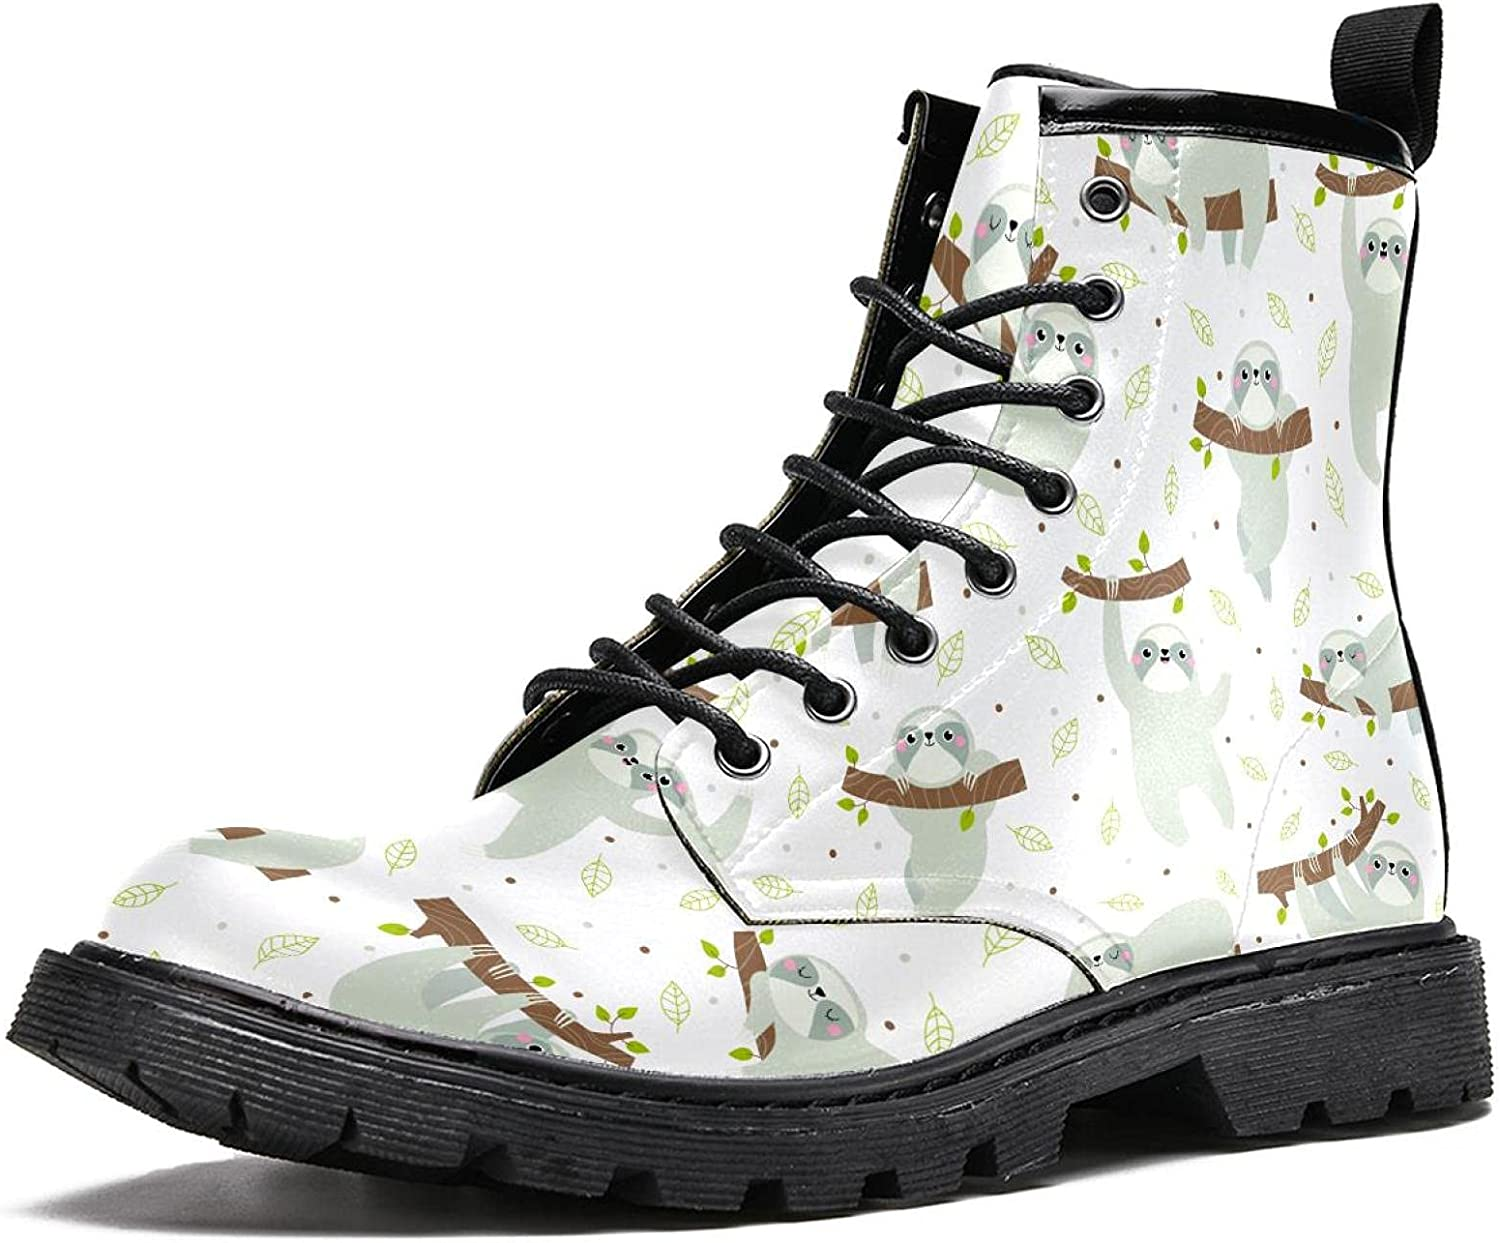 cute sloth Max 61% OFF Men's Stylish High Durable Max 74% OFF Hiking Boots Top Le